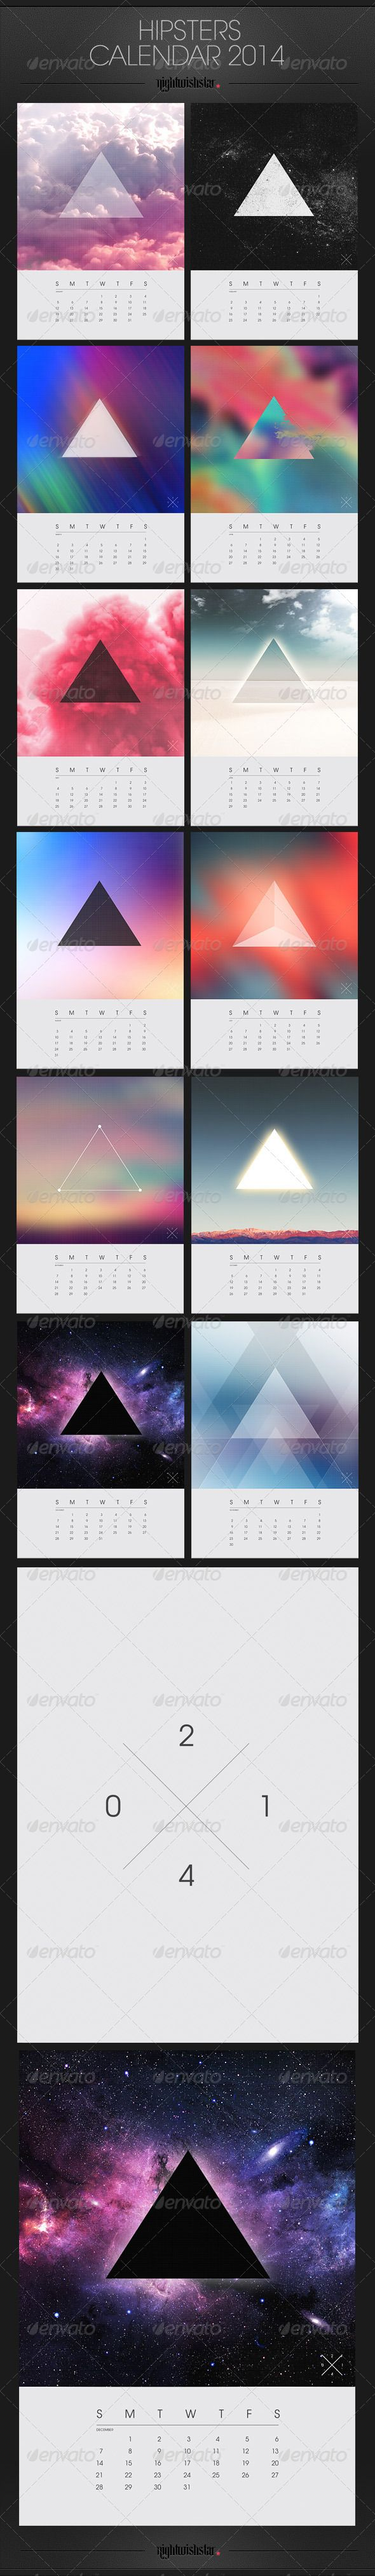 Hipster Calendar 2014 #GraphicRiver Hipster Calendar 2014 zip includes: 1 psd file (CMYK) and information.txt file; 12 months sites + cover; PSD file with all the months sites in folders – very well organized; Calendar size: A3 + bleed .25; free font used: .fontsquirrel /fonts/TeX-Gyre-Adventor zip includes my artwork but you can easy add your graphics; check also my FB covers (same style!) in my portfolio; Visit also Mesmeriseme and Monsterunderbed ! ...